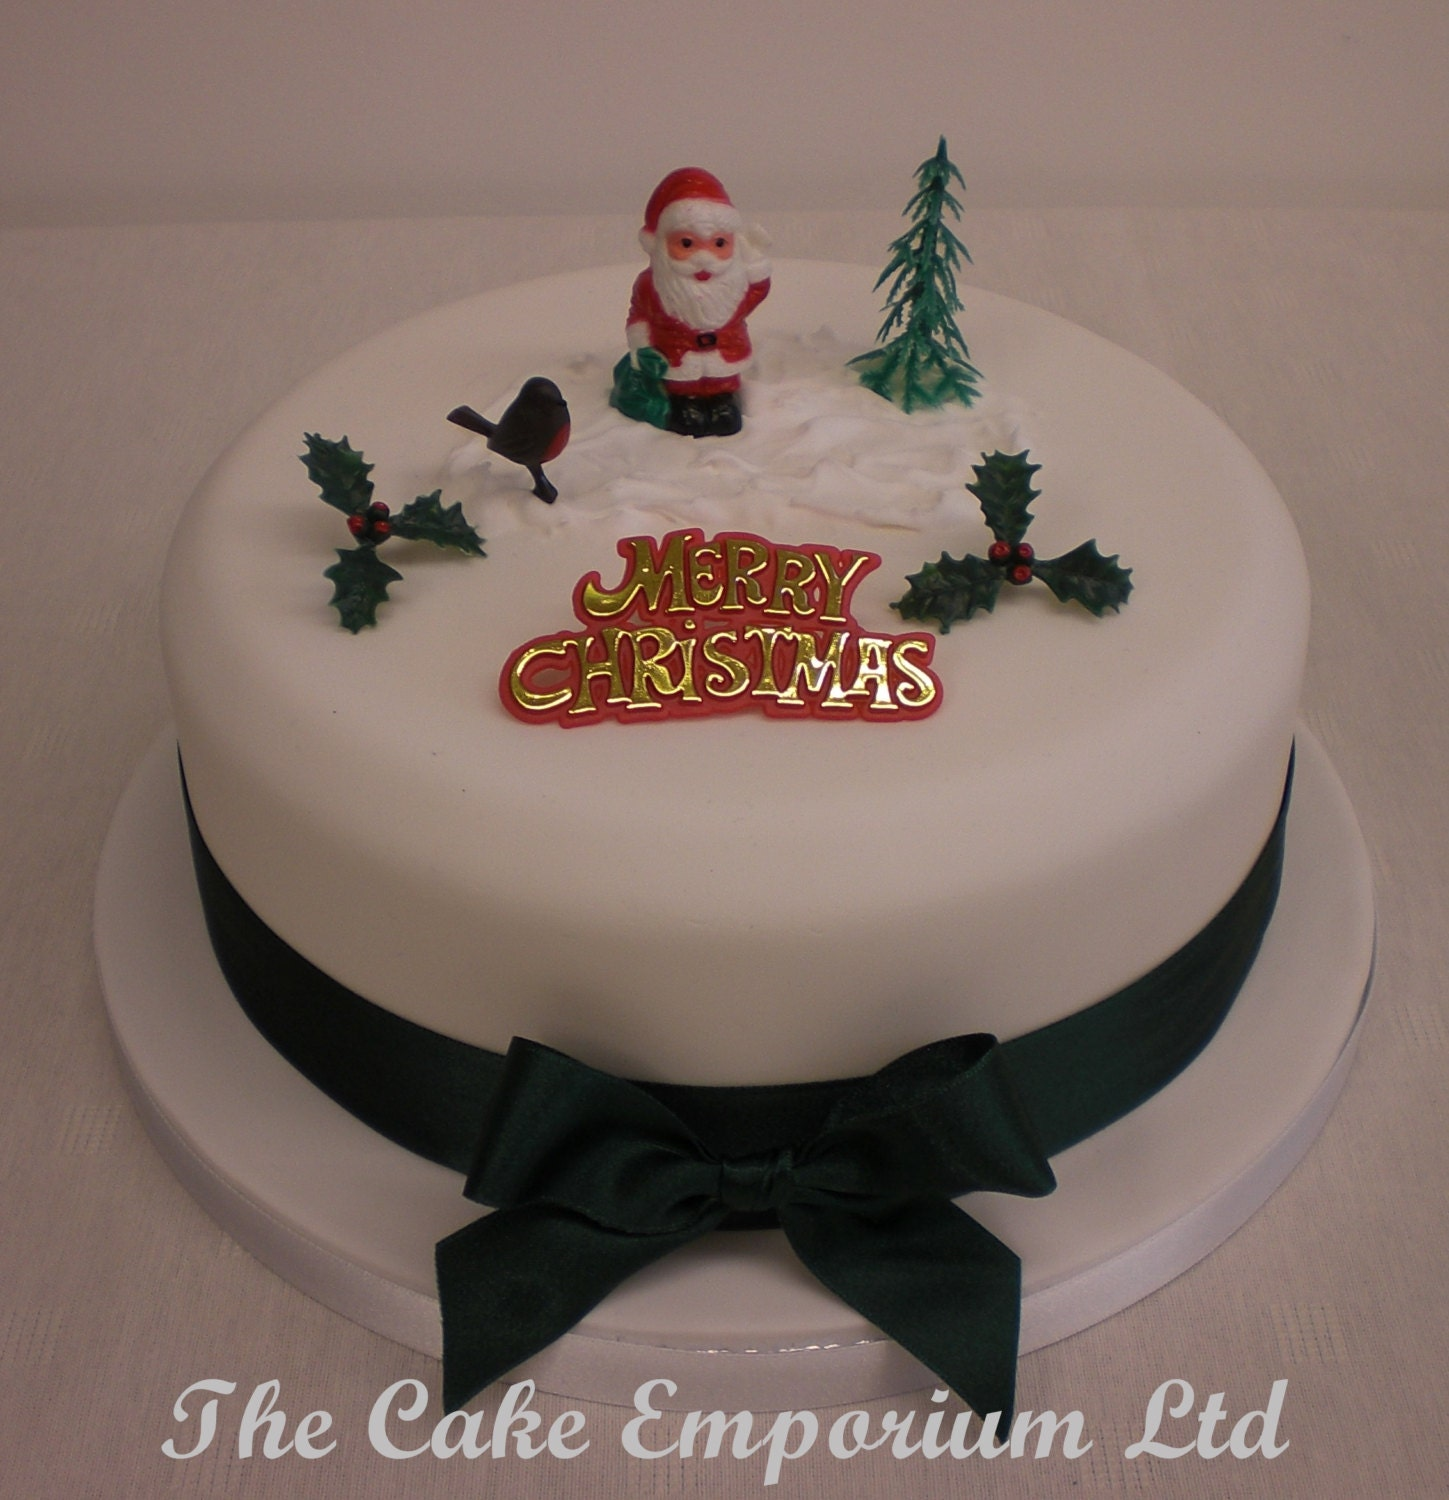 Etsy Christmas Cake Decorations : Santa / Father Christmas Cake Topper Decoration Pack from ...